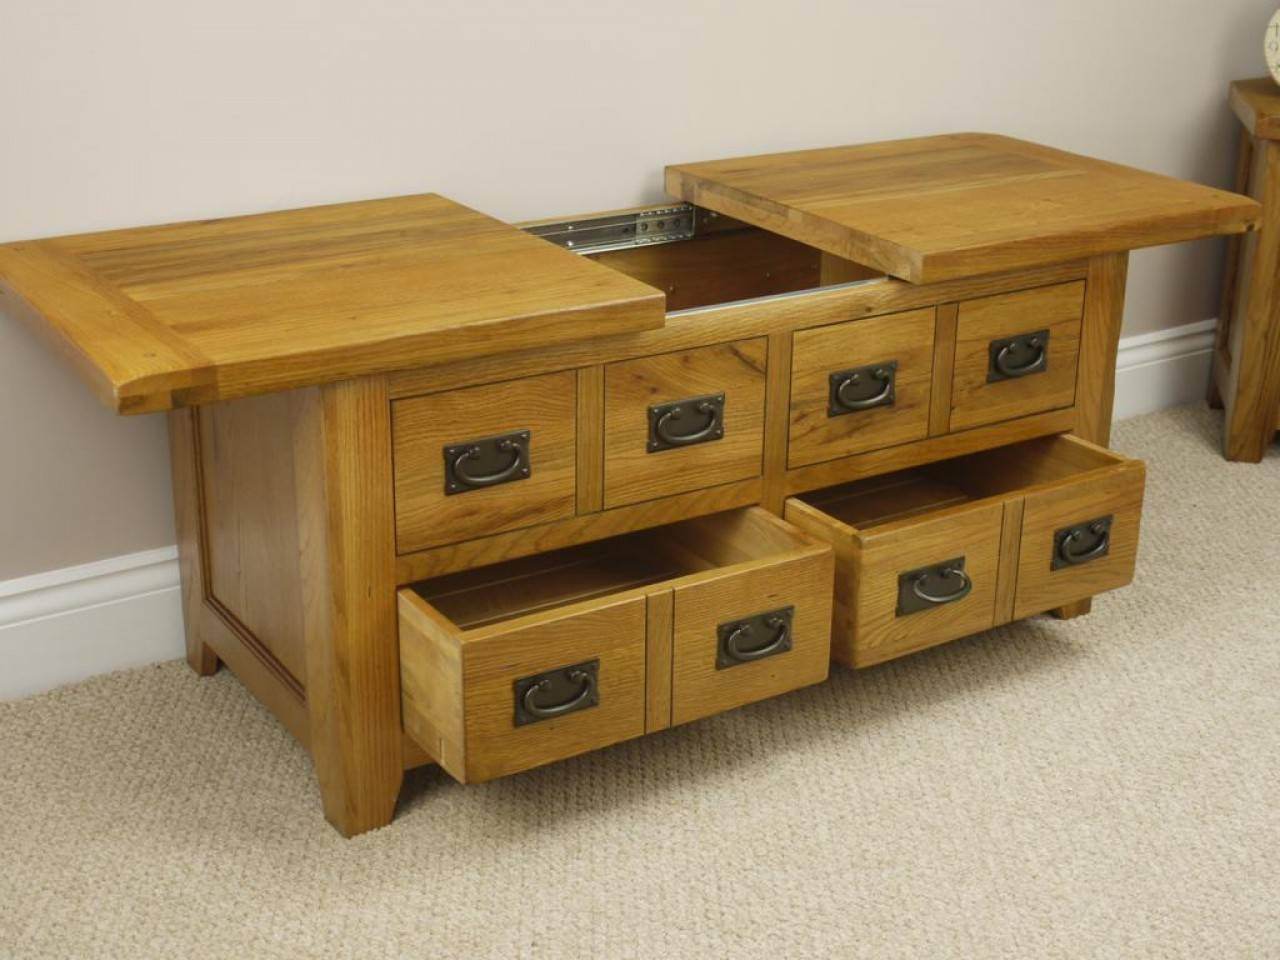 Square Oak Coffee Tables With Storage | Coffee Tables Decoration throughout Square Coffee Tables With Storages (Image 29 of 30)